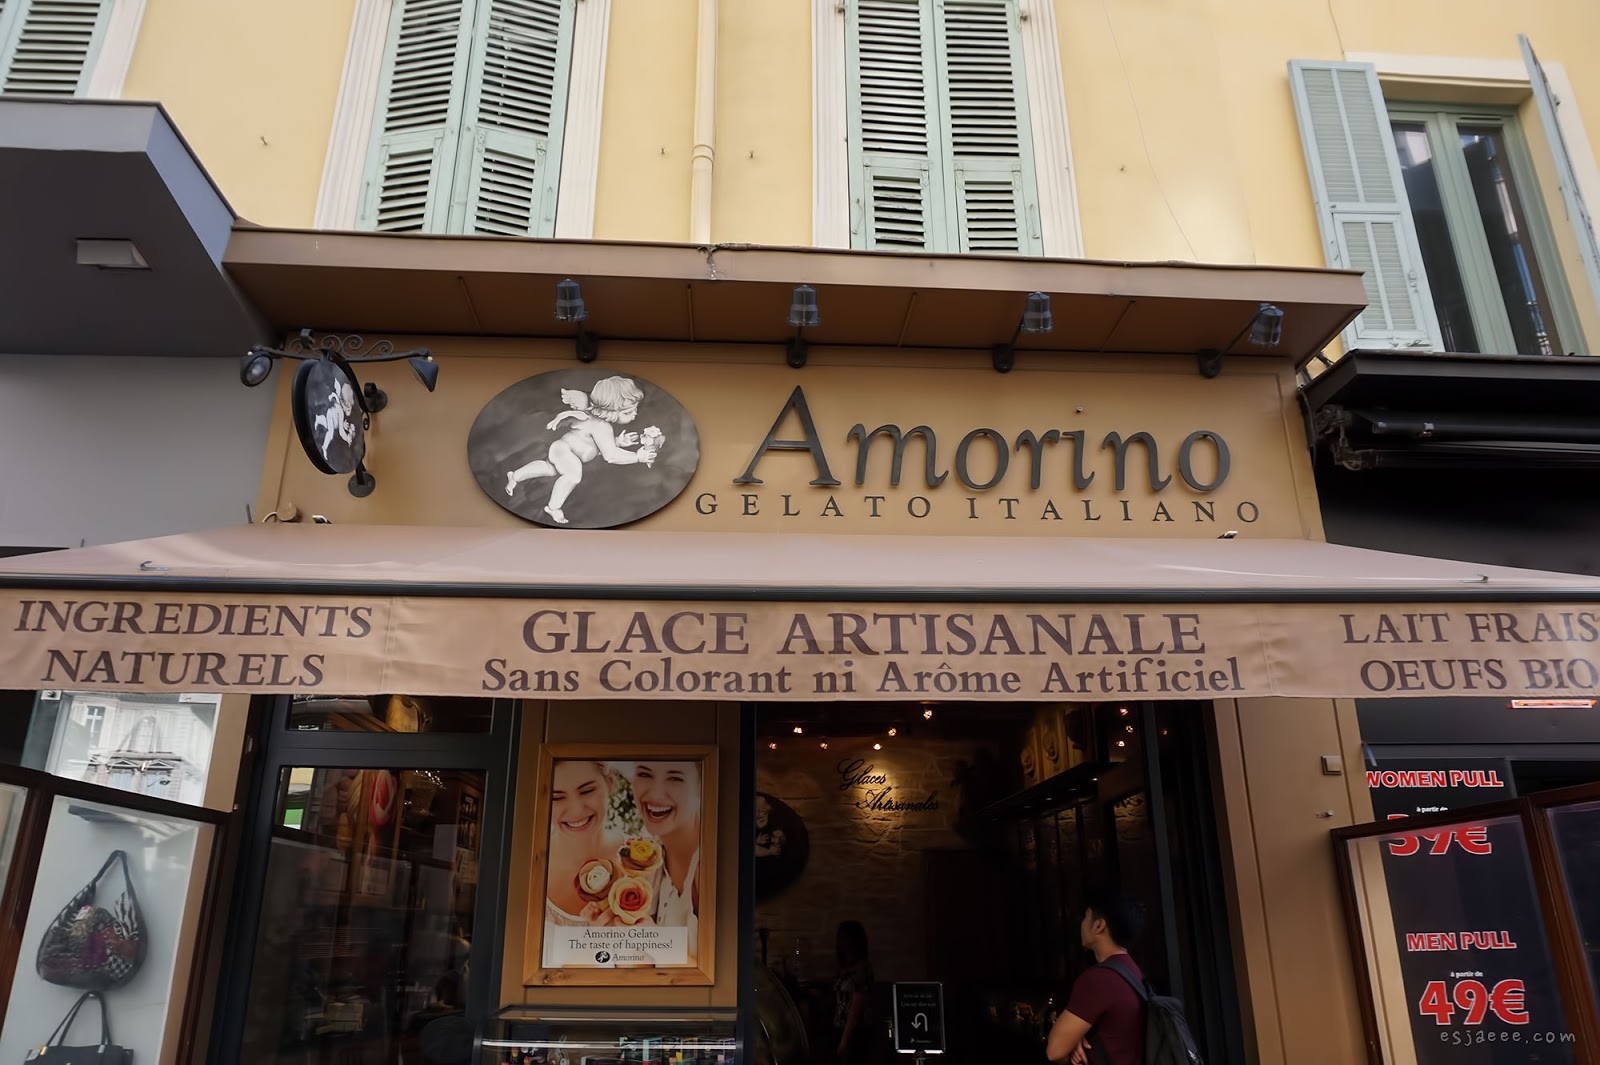 Amorino Gelateria in Nice